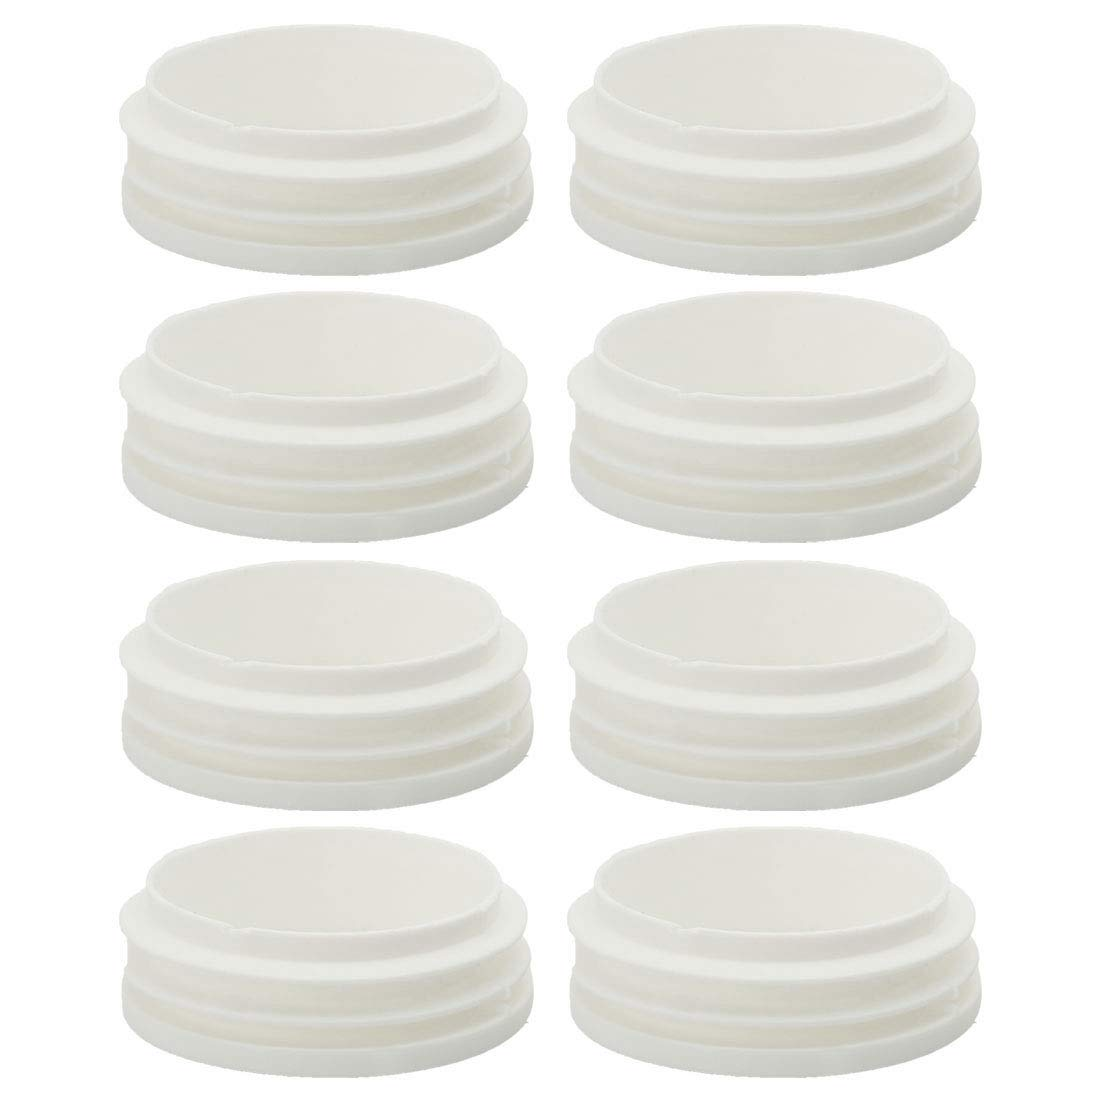 uxcell/® 5//8 16mm OD Plastic Round Ribbed Tube Insert Pipe Tubing End Covers Caps White 8pcs 0.51-0.59 Inner Dia Furniture Glide Chair Feet Floor Protector